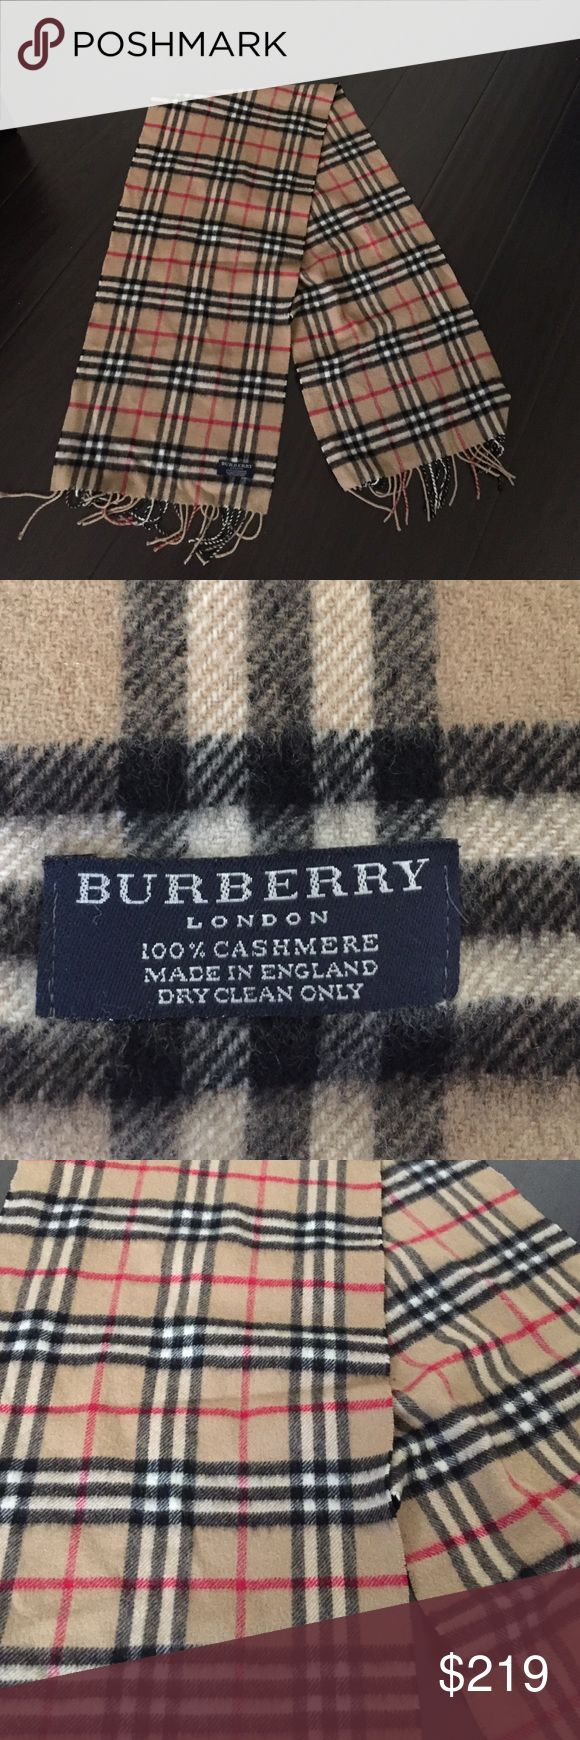 100% authentic Burberry cashmere scarf Used but in good condition. 100% authentic Burberry scarf. Made in England. 100% cashmere. Dry clean only. Our hard from the Burberry store years back. 🚫No trades. 🚫No exchanges. 🚫No refunds. 🚫No pay pal 🚫 Burberry Accessories Scarves & Wraps